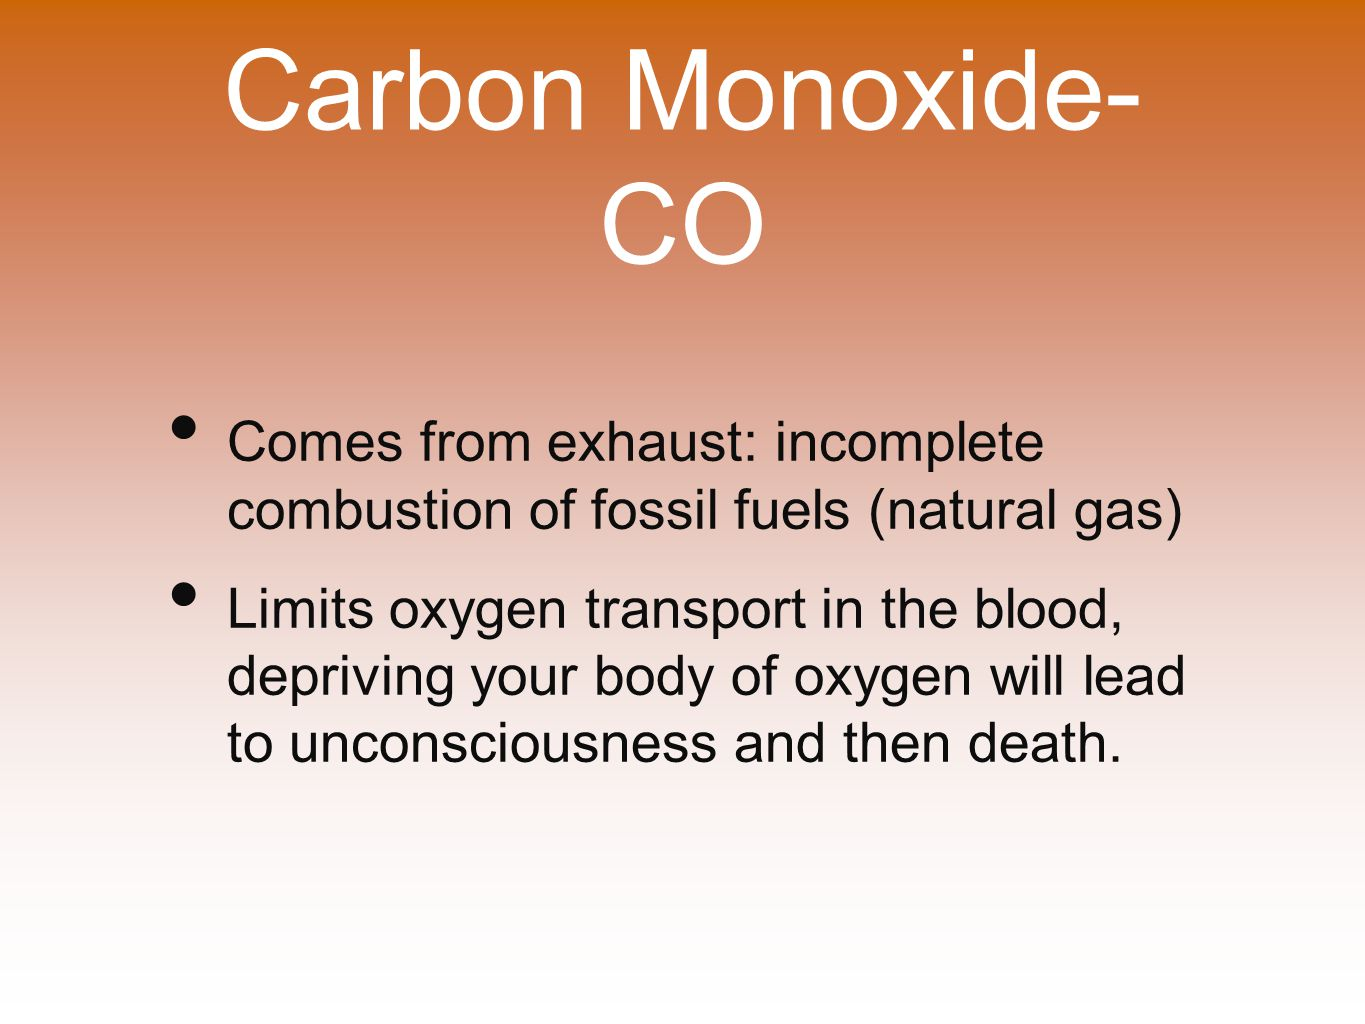 Carbon Monoxide- CO Comes from exhaust: incomplete combustion of fossil fuels (natural gas)